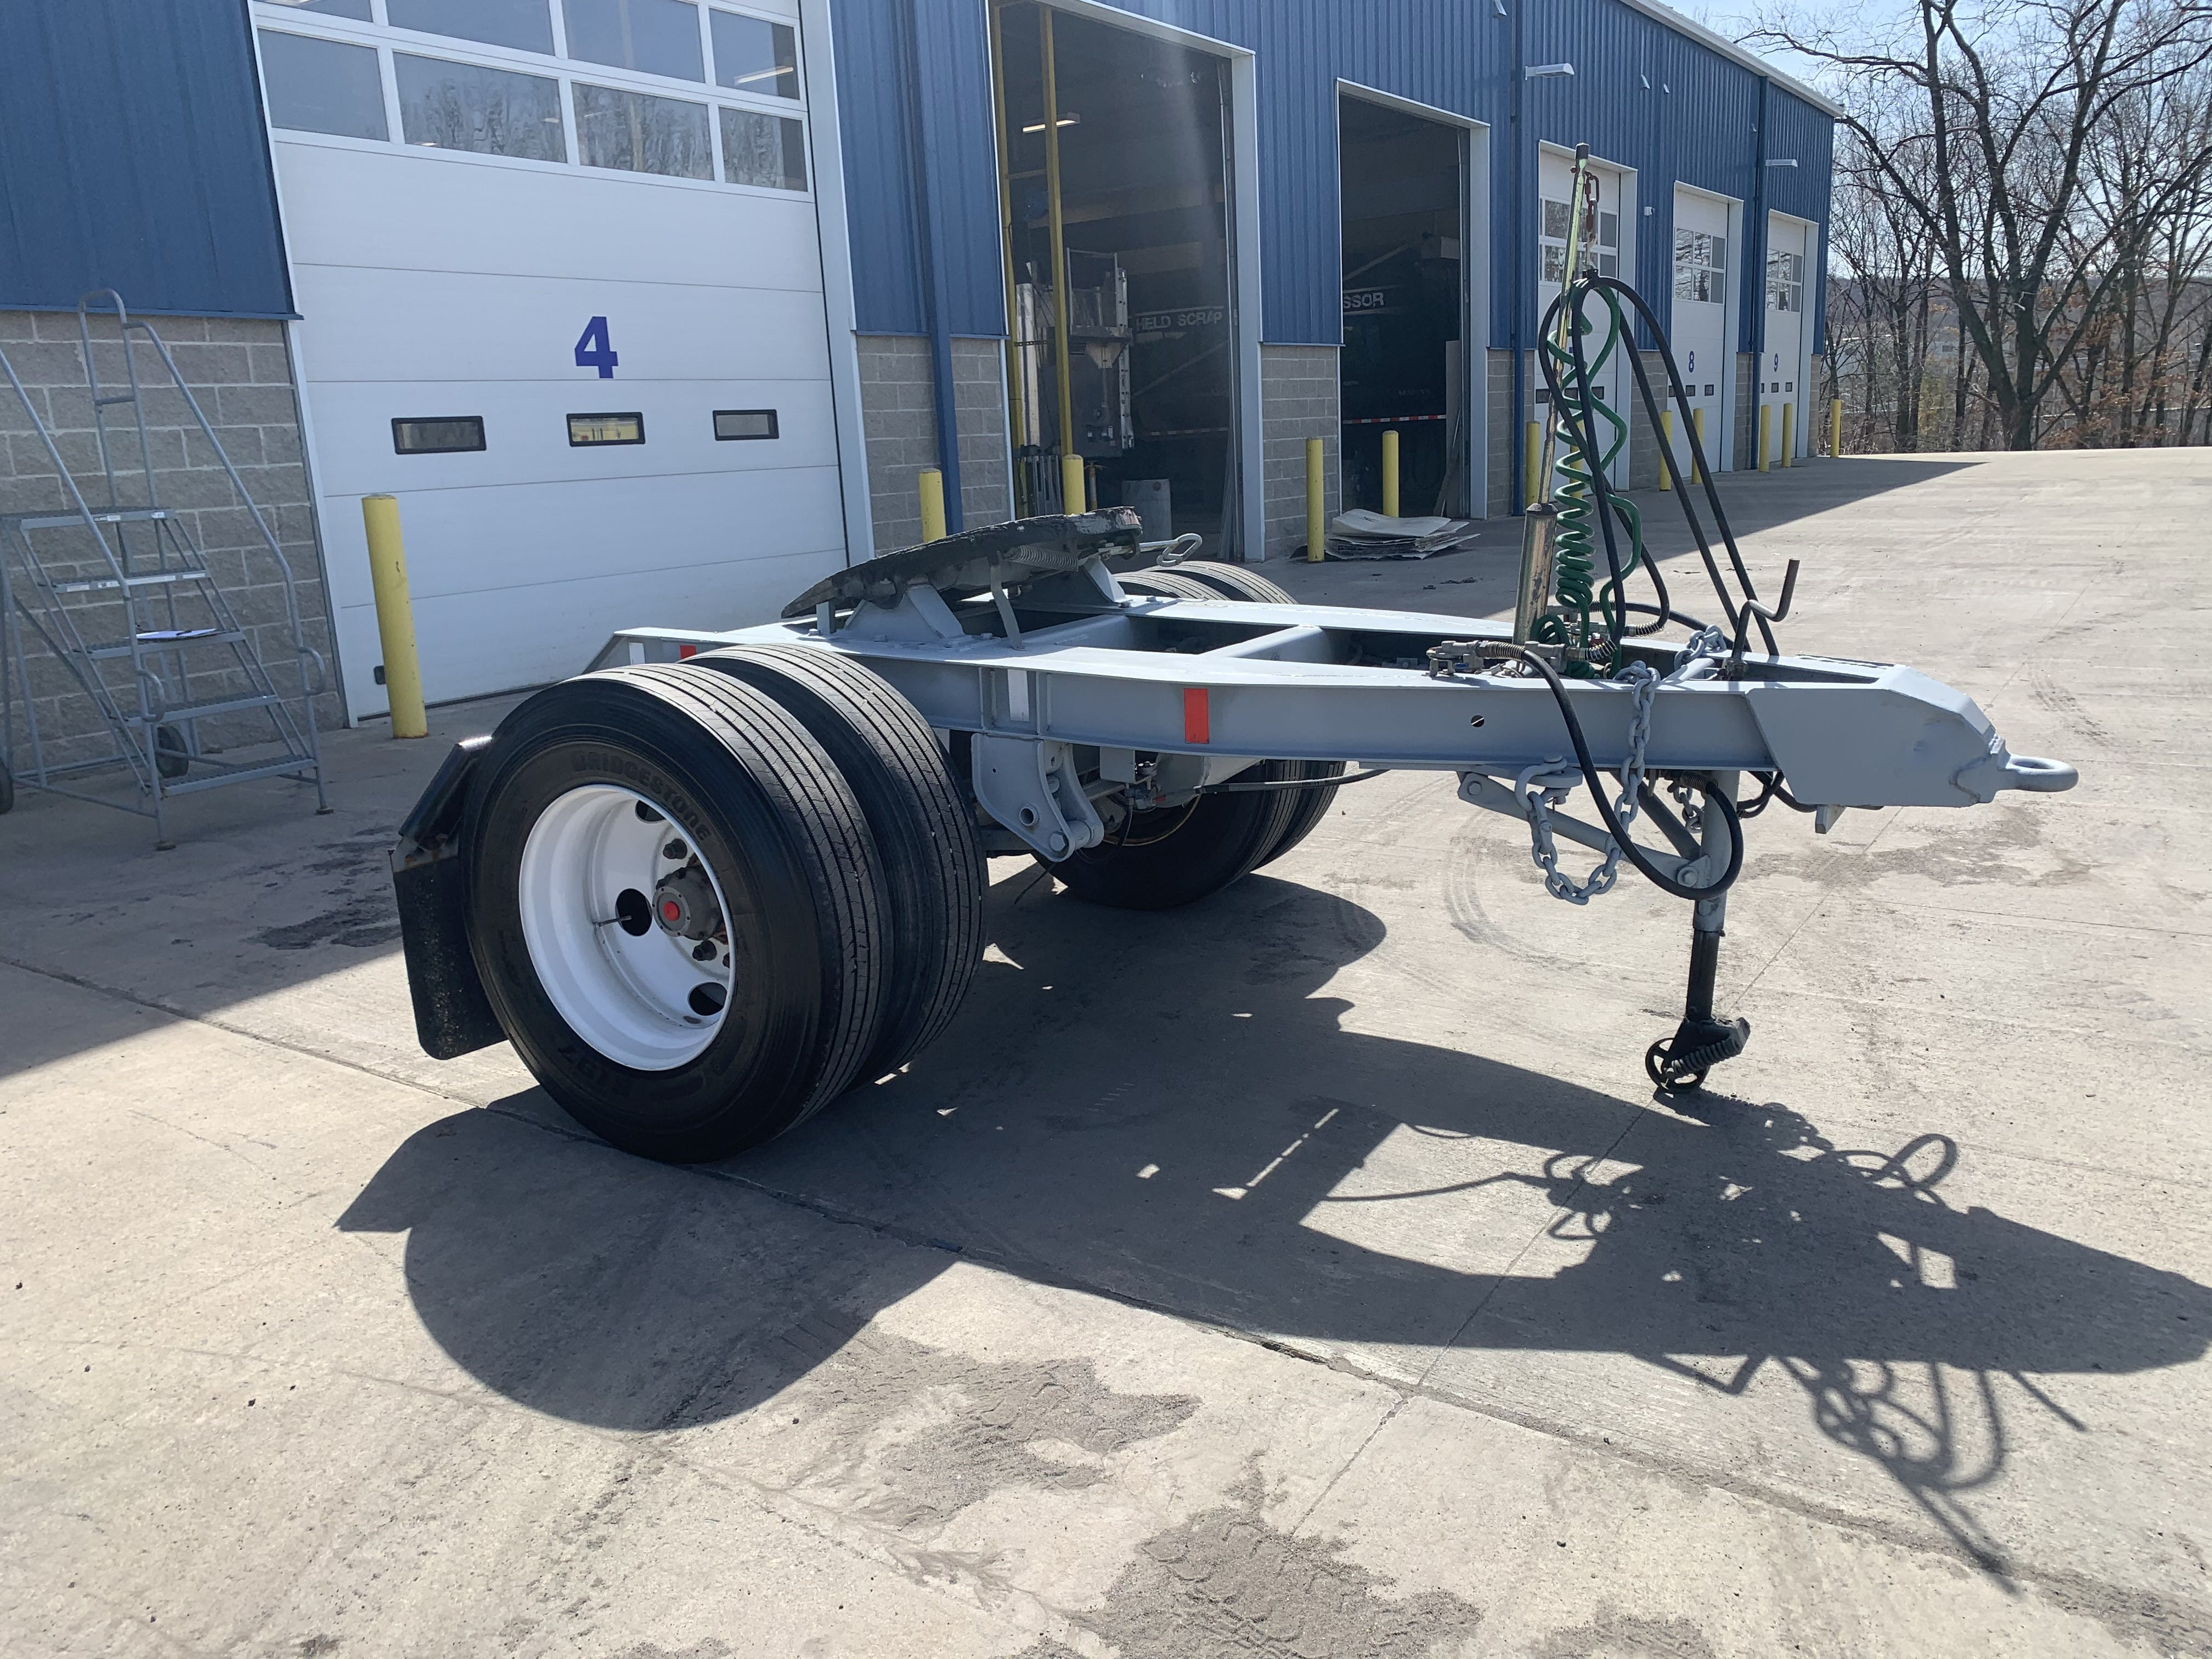 2014 GREAT DANE CONTAINER DOLLY TRAILER #643459